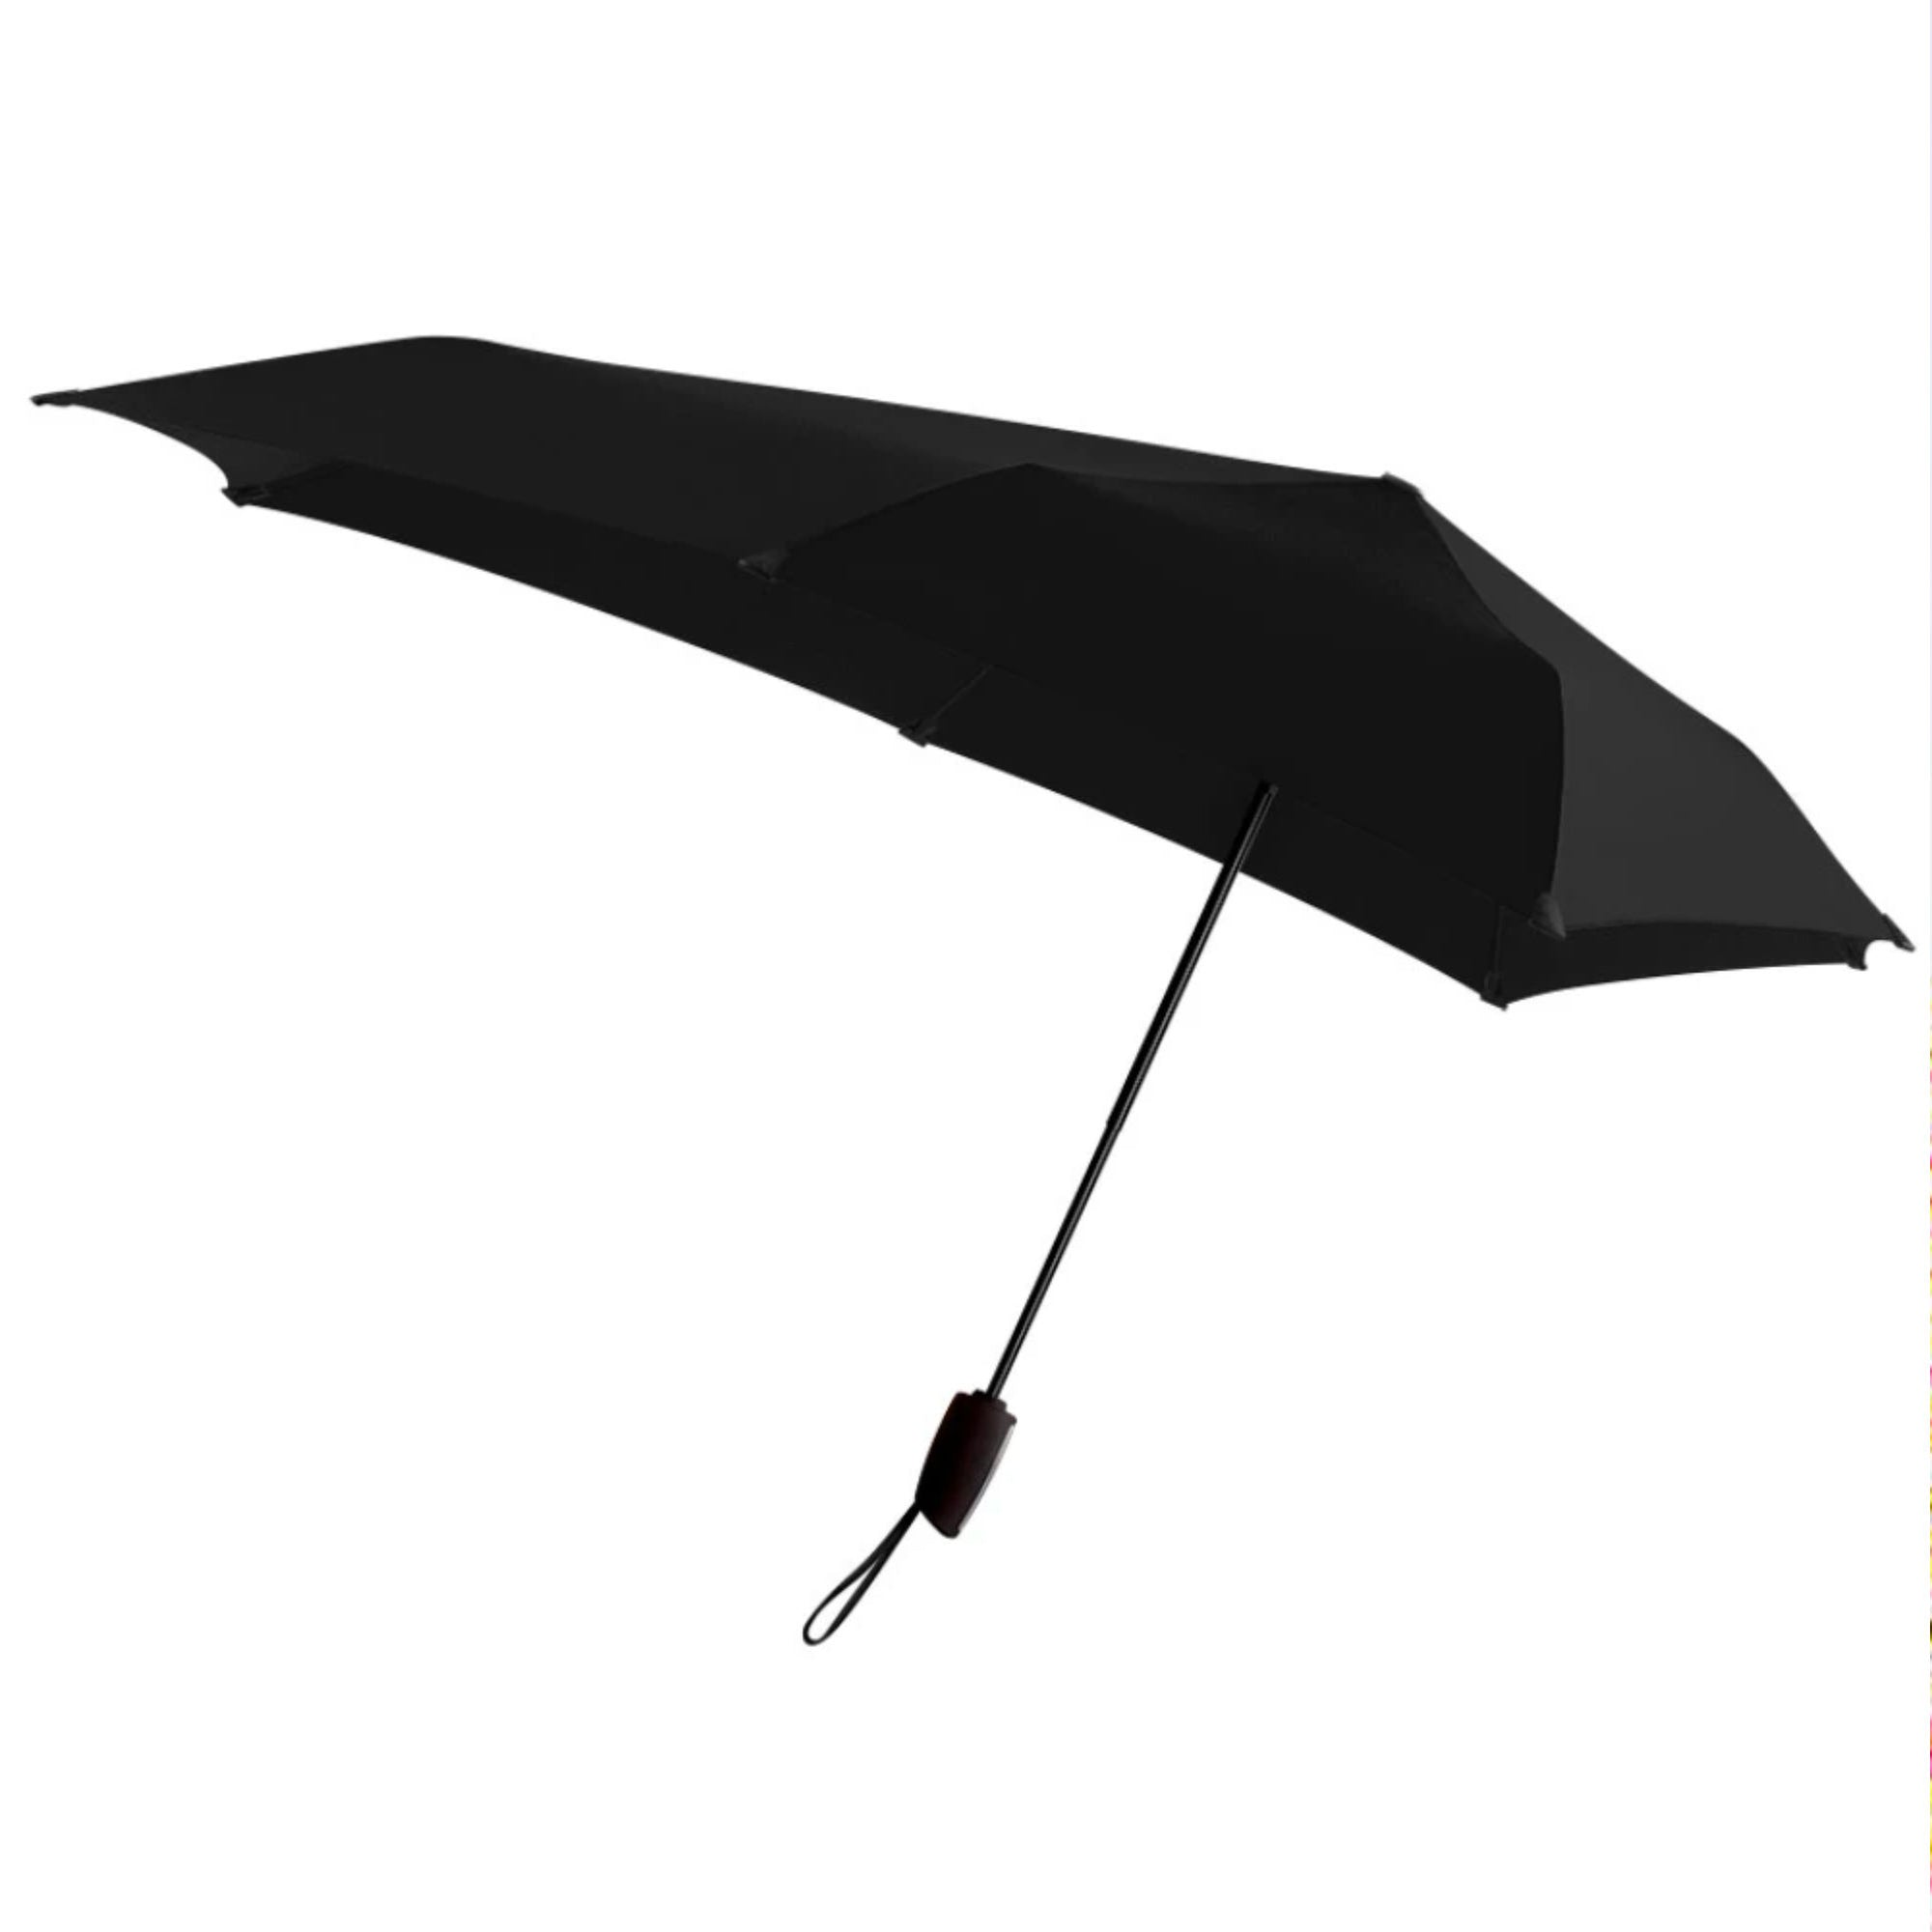 Senz° Automatic foldable umbrella, pure black